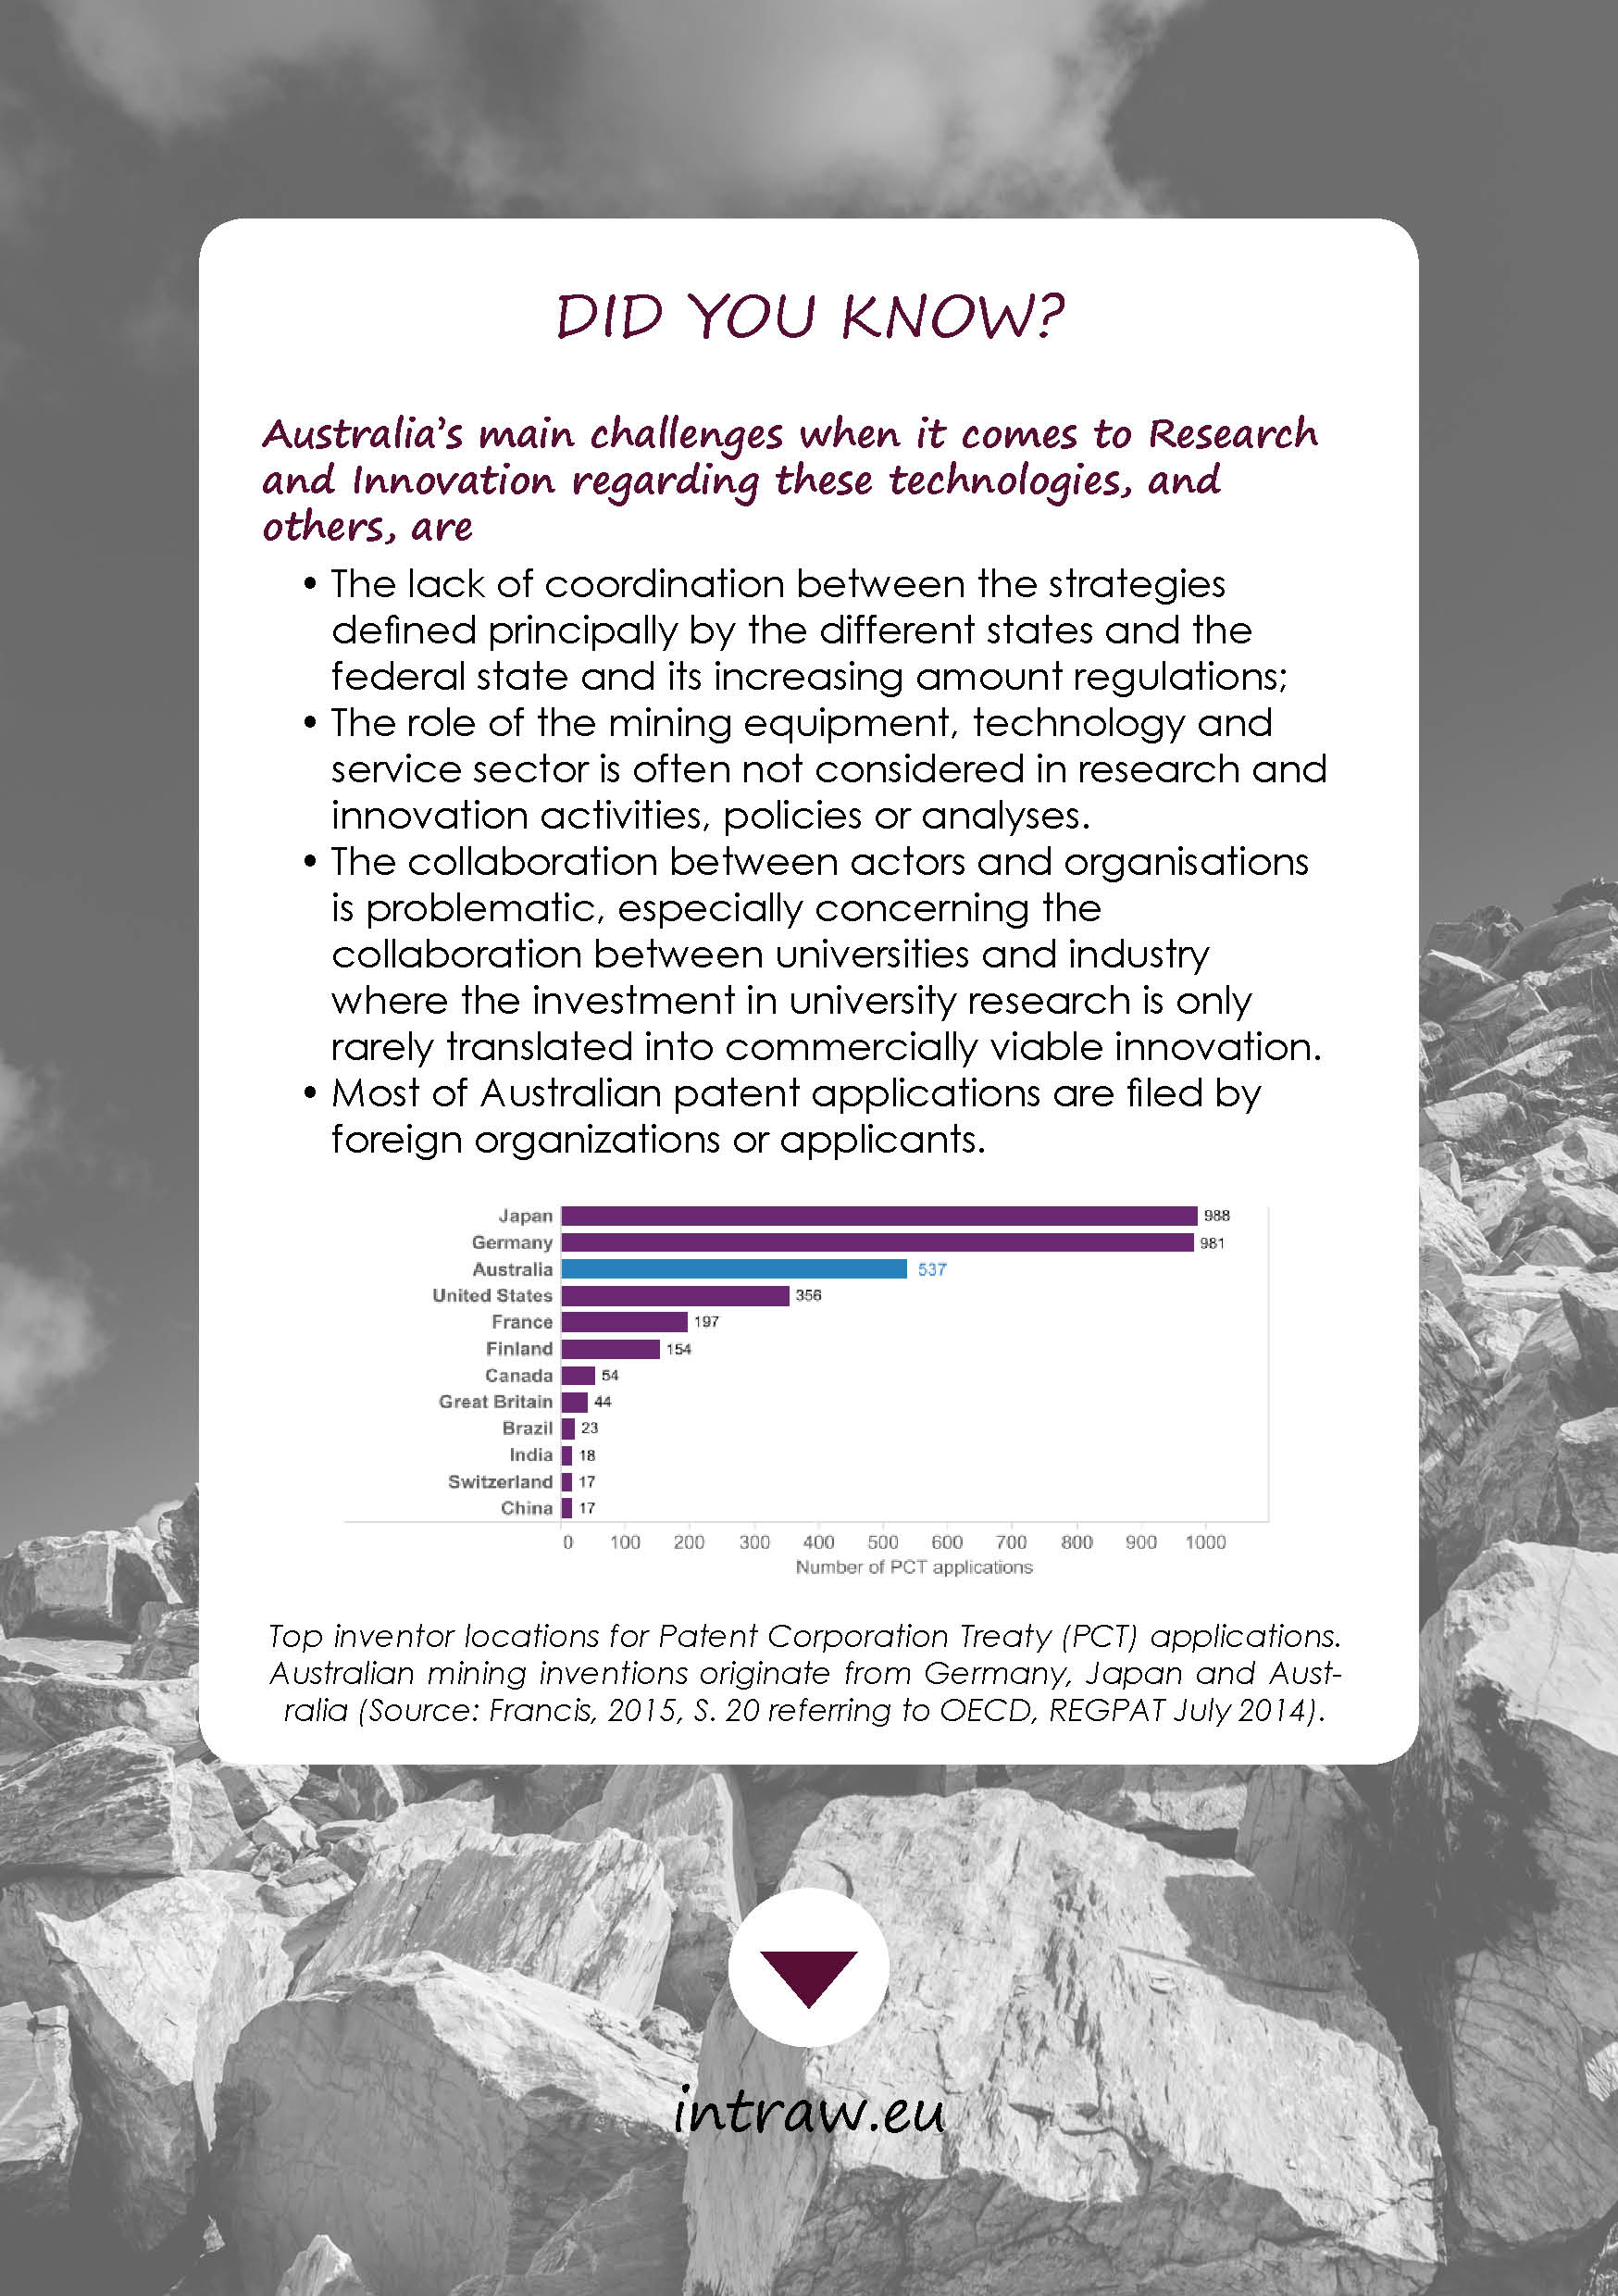 Check how #Australia is doing on #ResearchAndInnovation, now with a look on its challenges